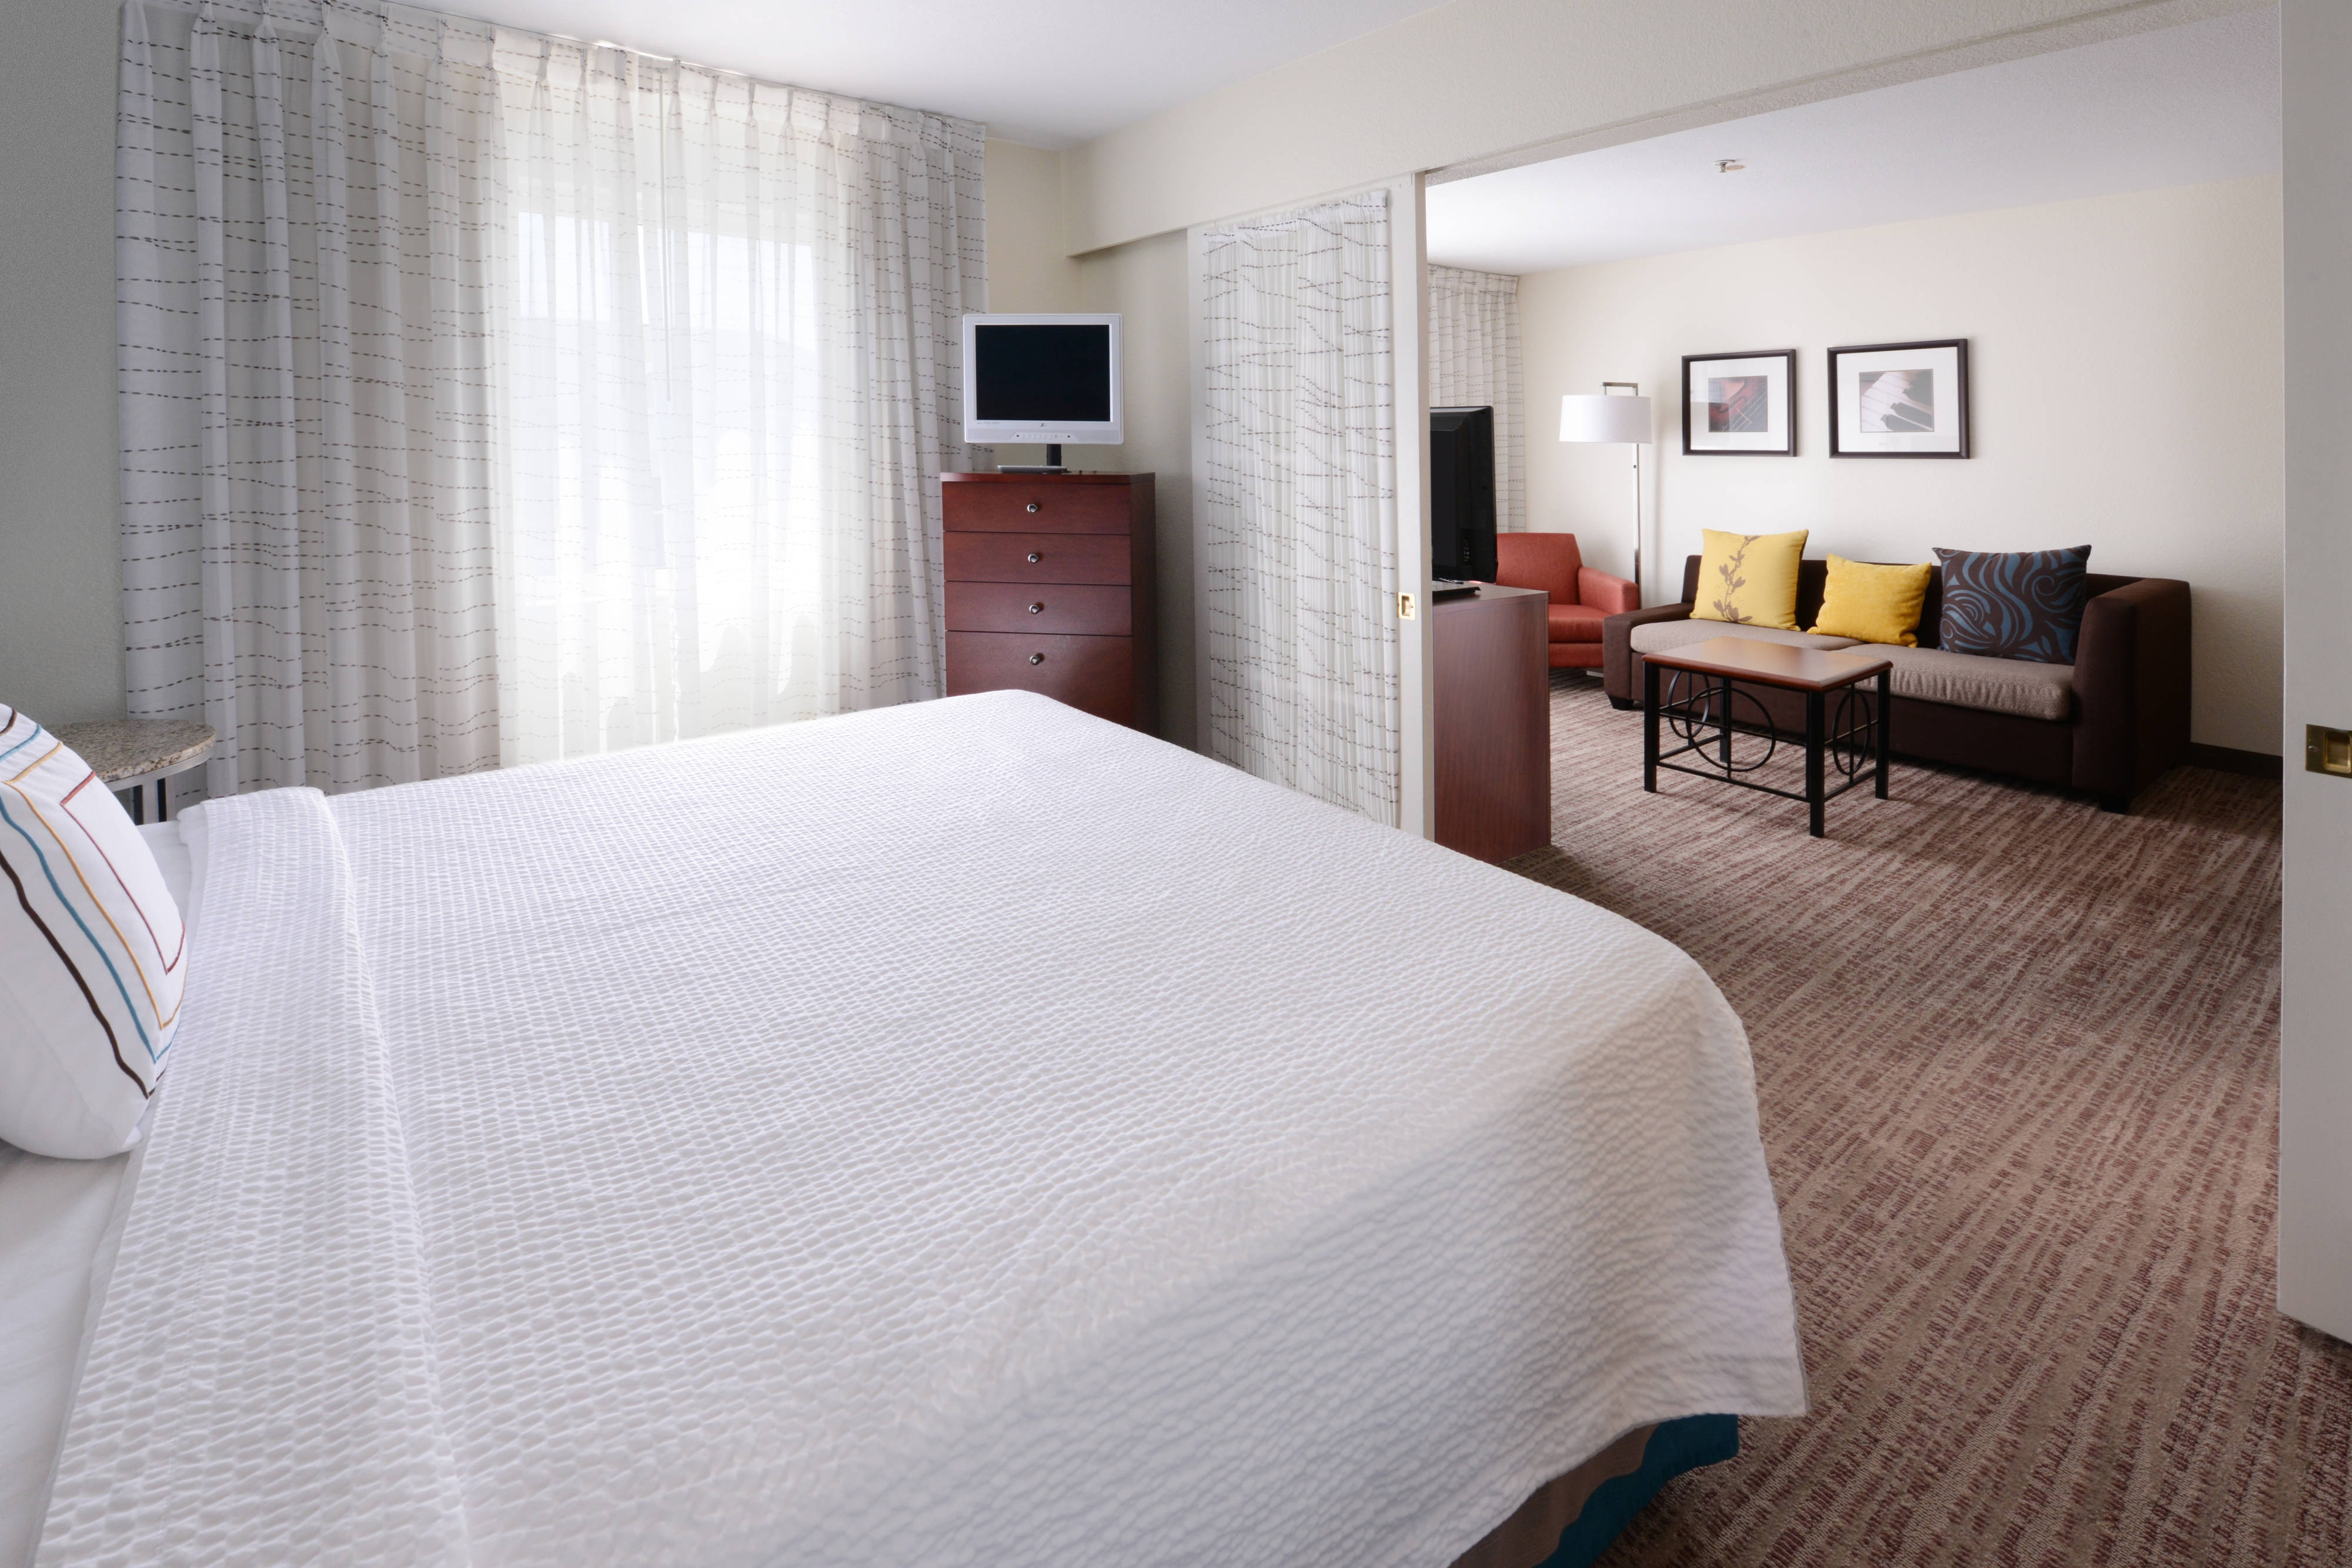 Suite de un dormitorio en Dallas, TX